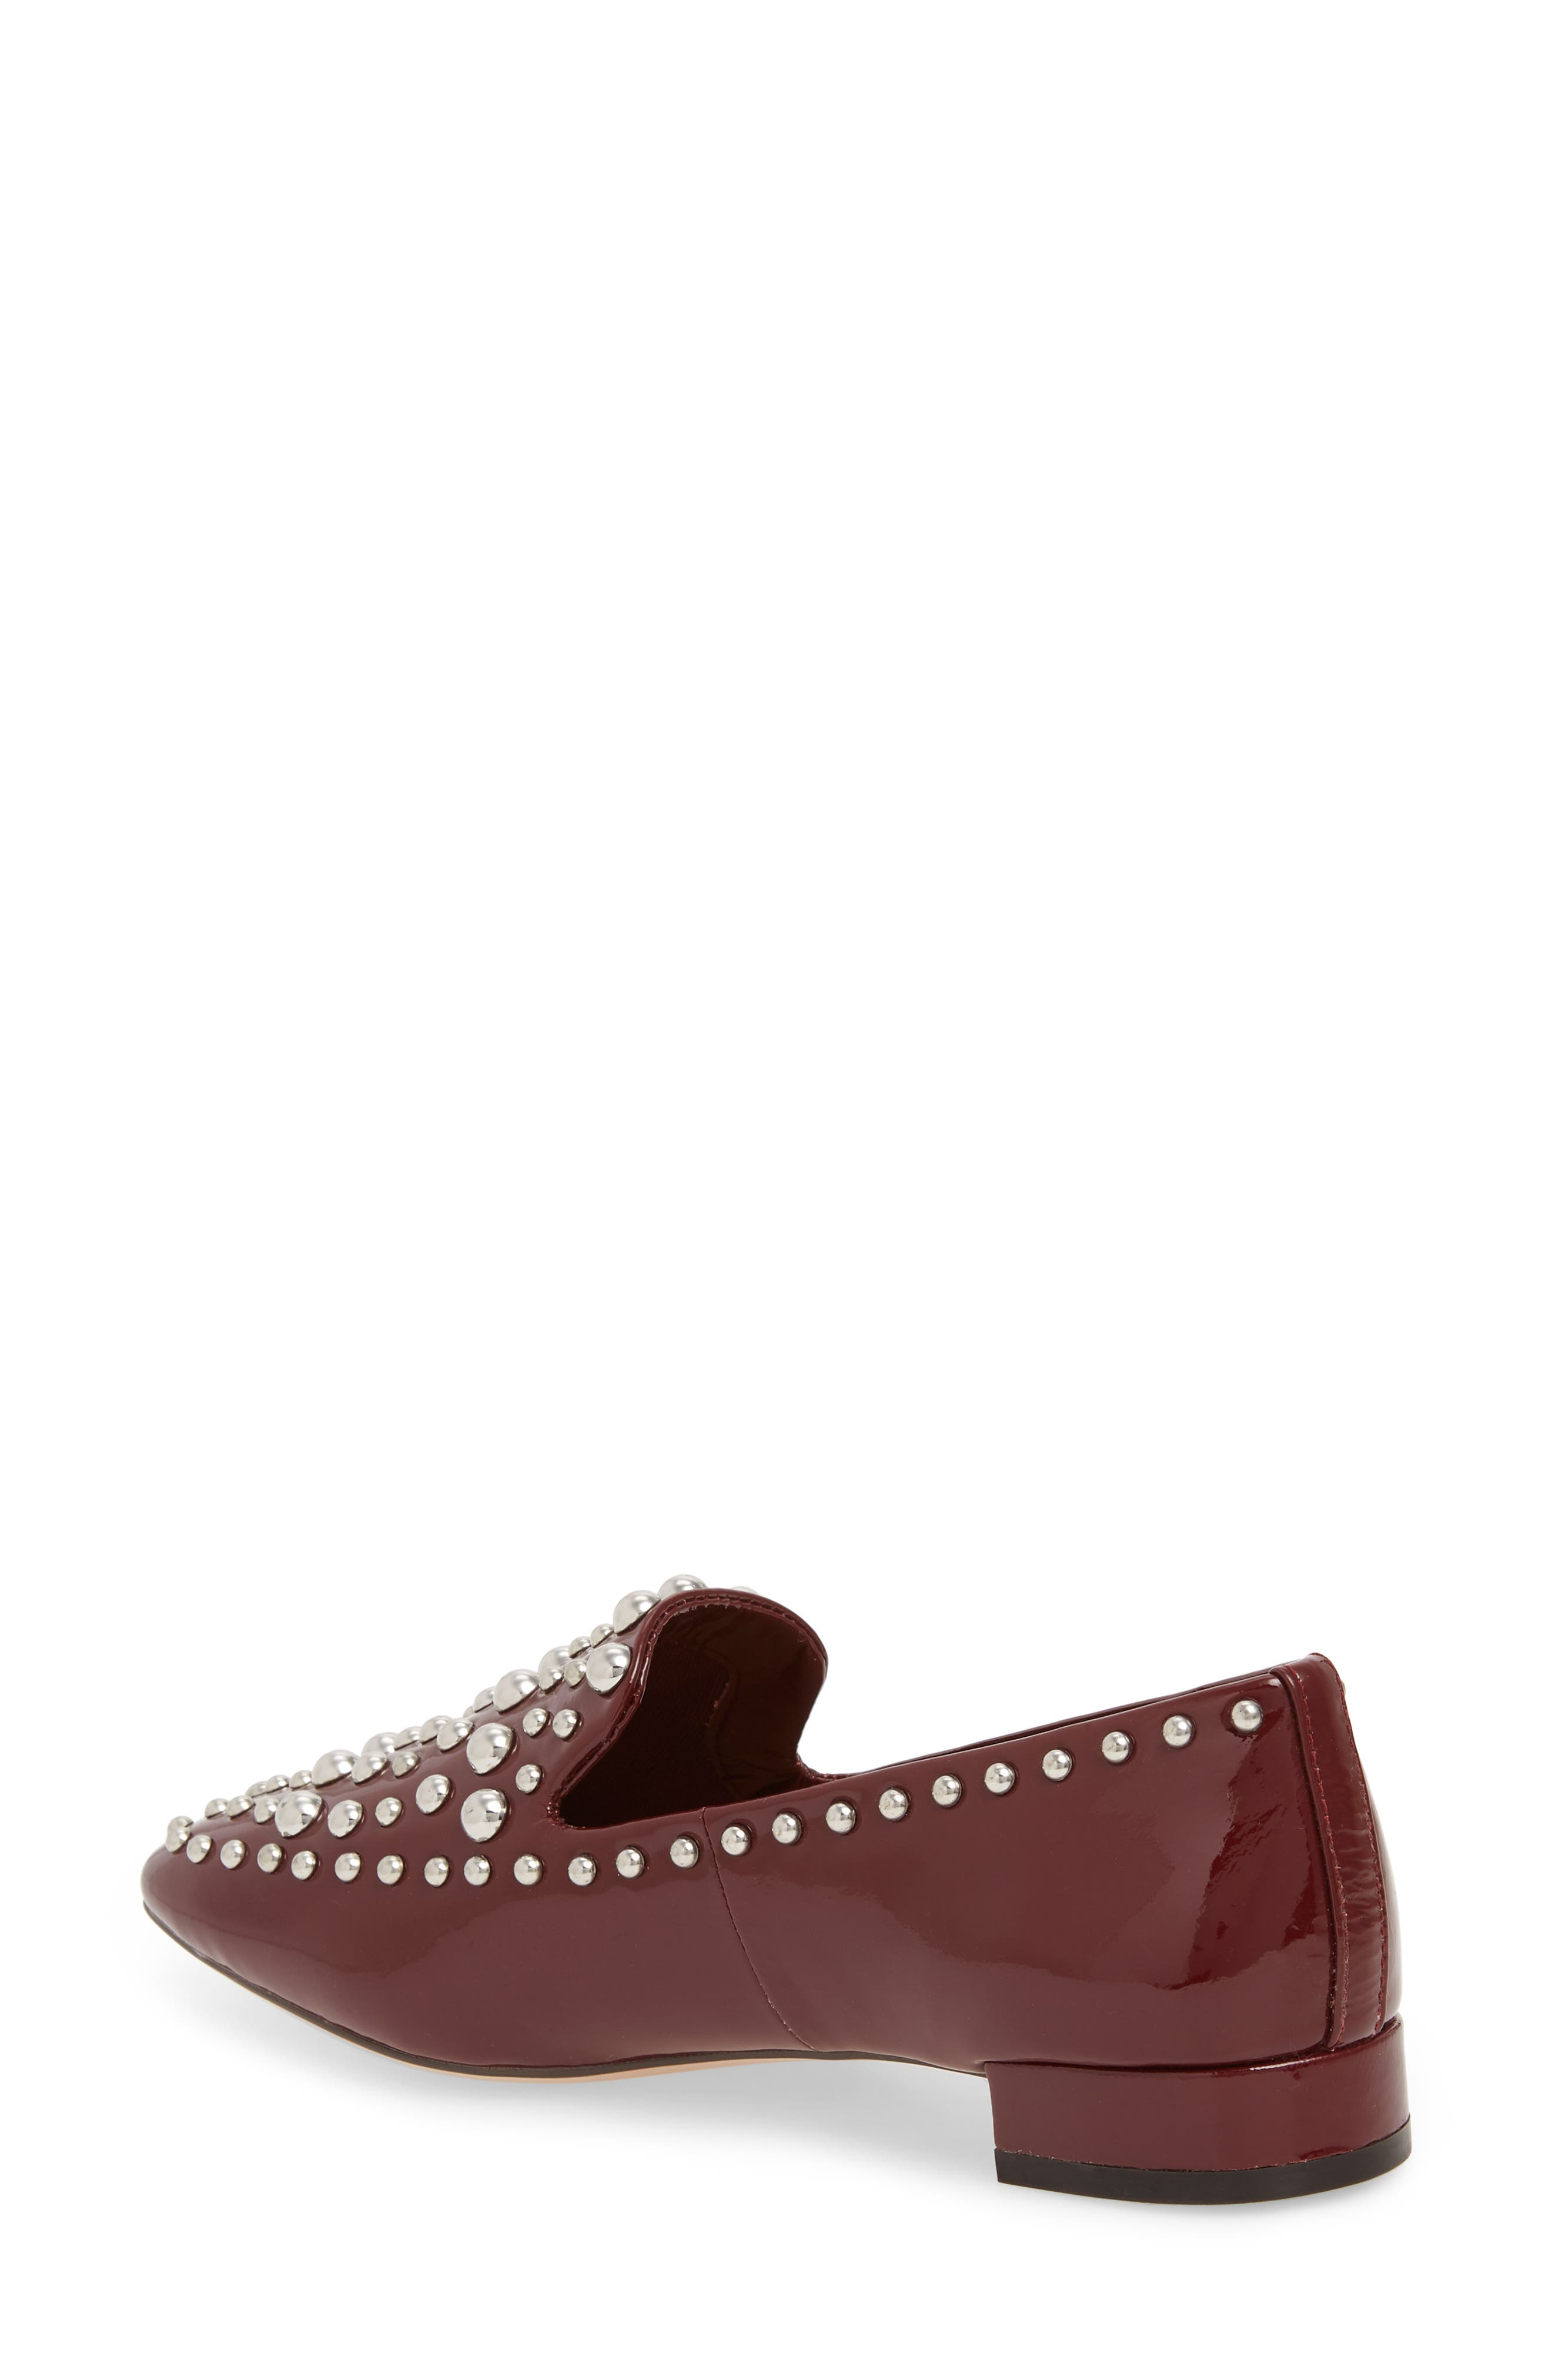 Kaylee Loafer,                             Alternate thumbnail 2, color,                             BERRY PATENT LEATHER